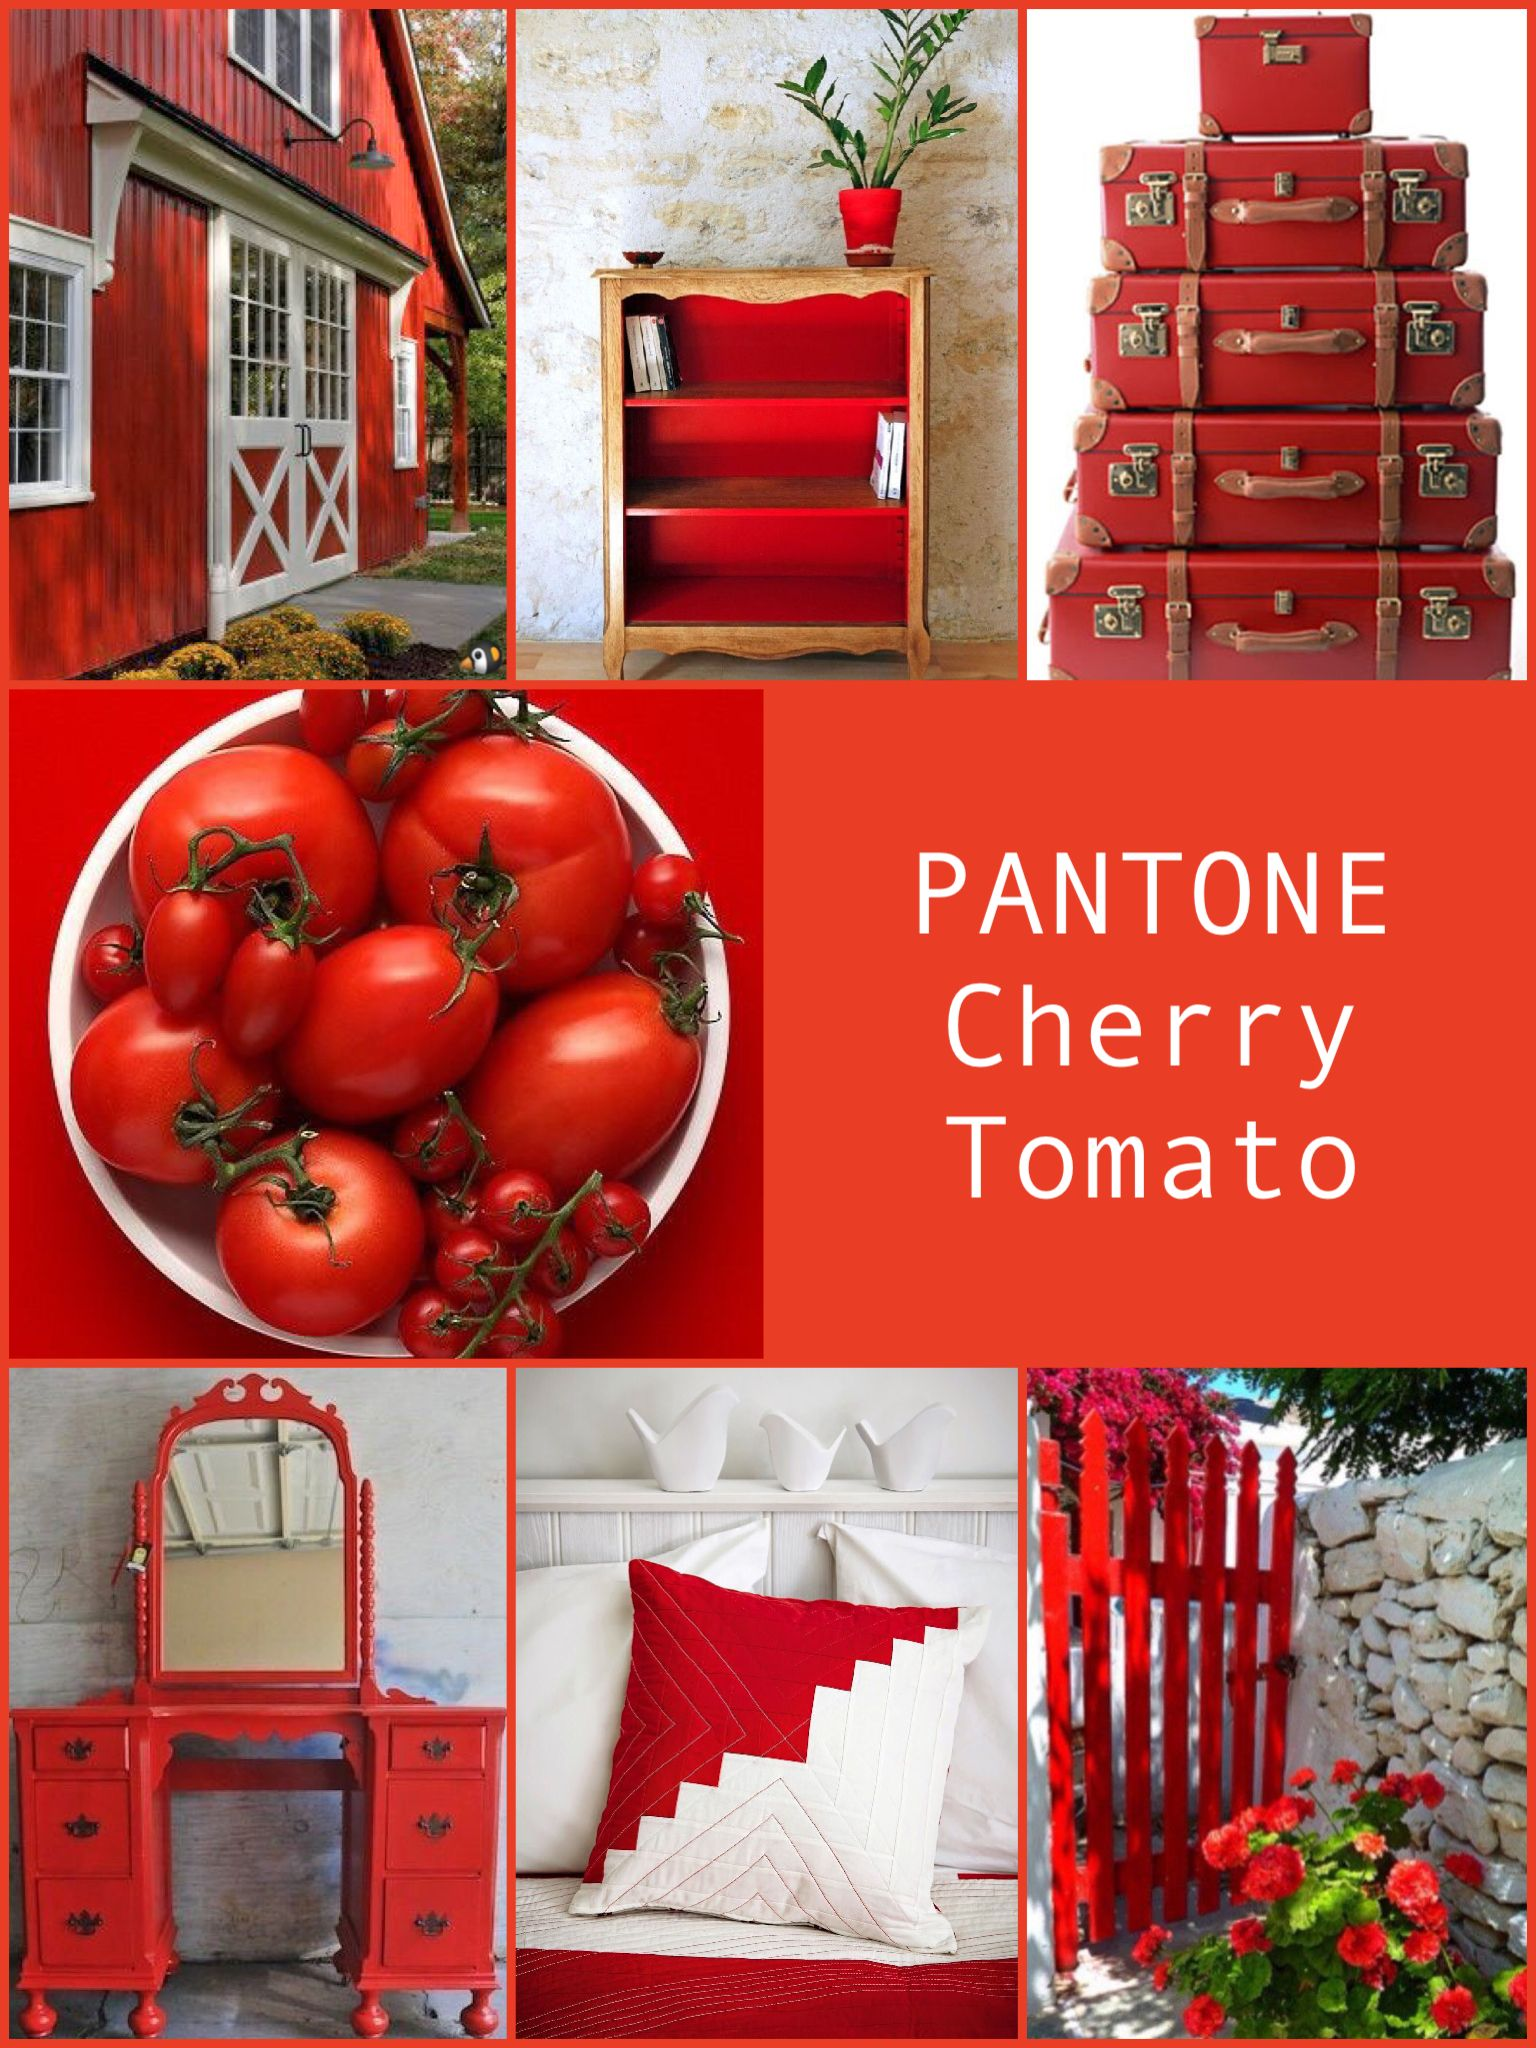 pantone cherry tomato home style pinterest pantone color pantone and pantone 2017. Black Bedroom Furniture Sets. Home Design Ideas